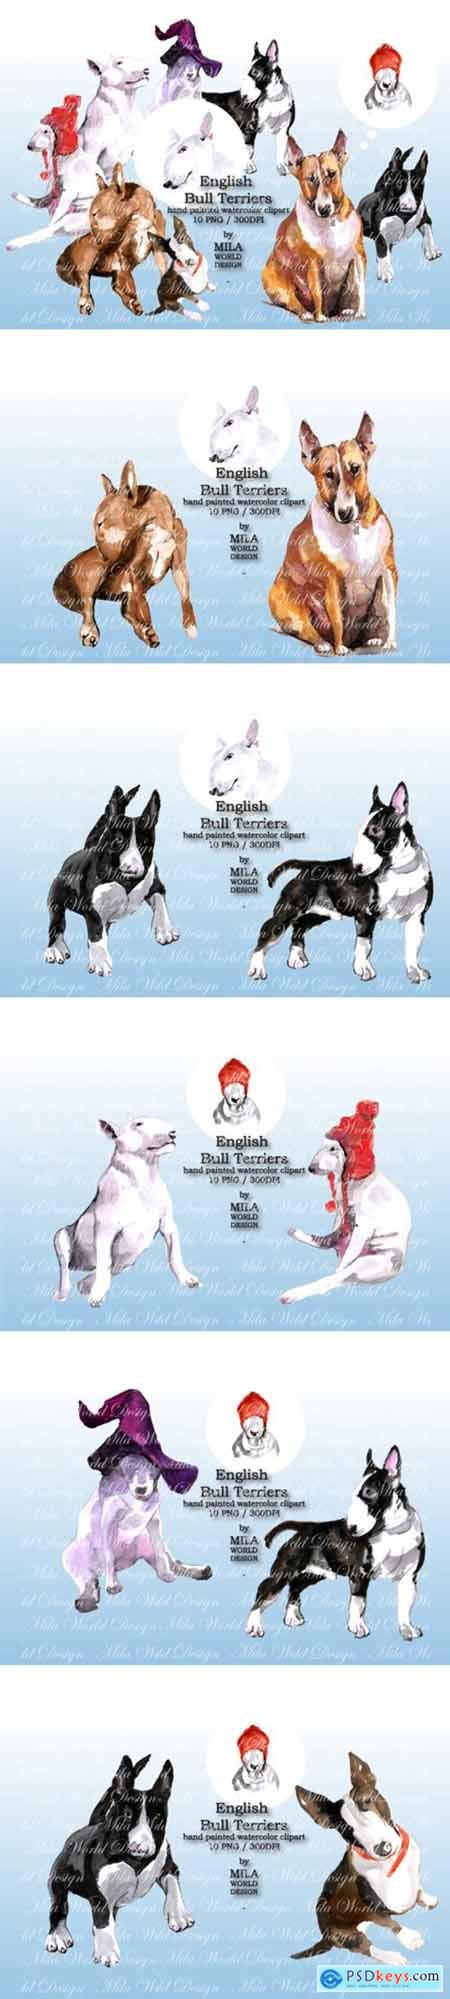 Watercolor English Bull Terriers Clip Art 1598521